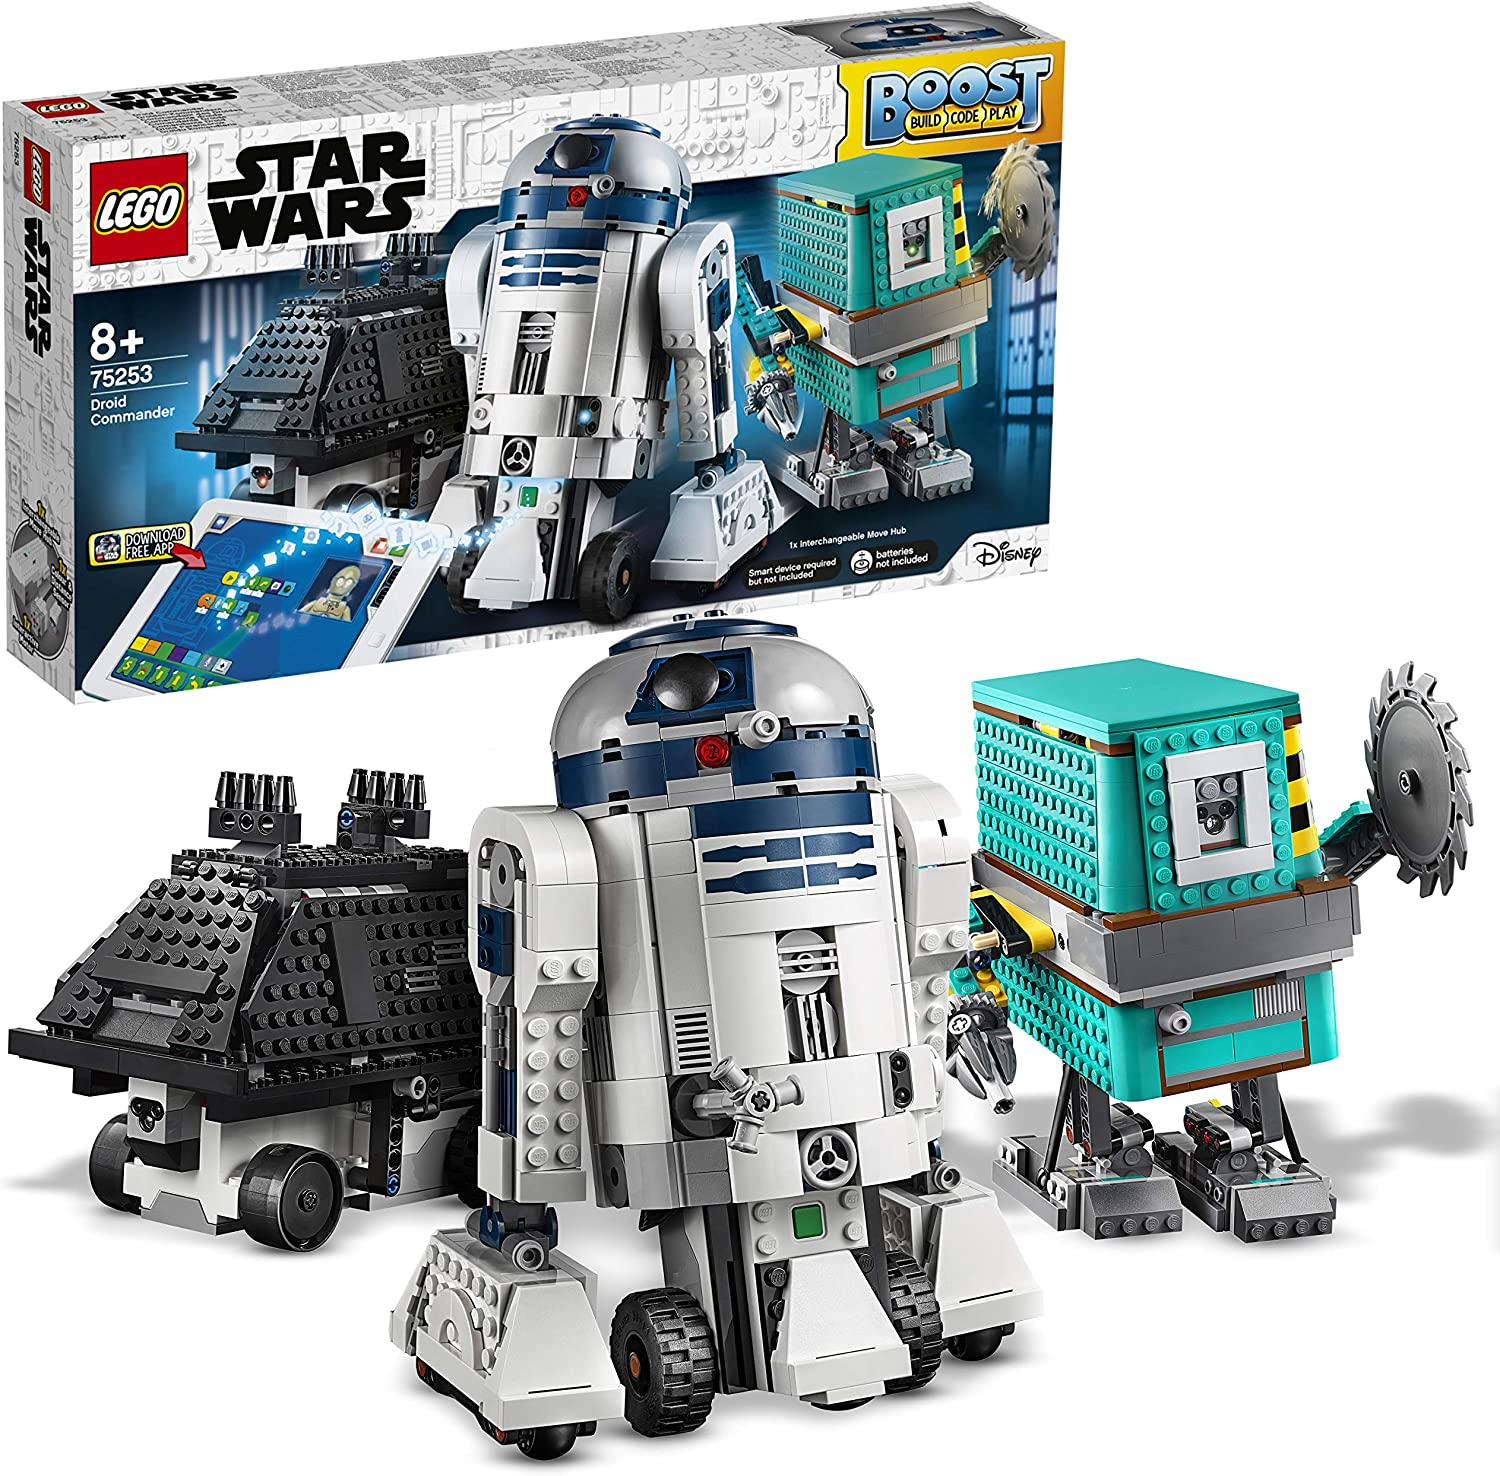 LEGO® Star Wars™ Boost Droide, 75253